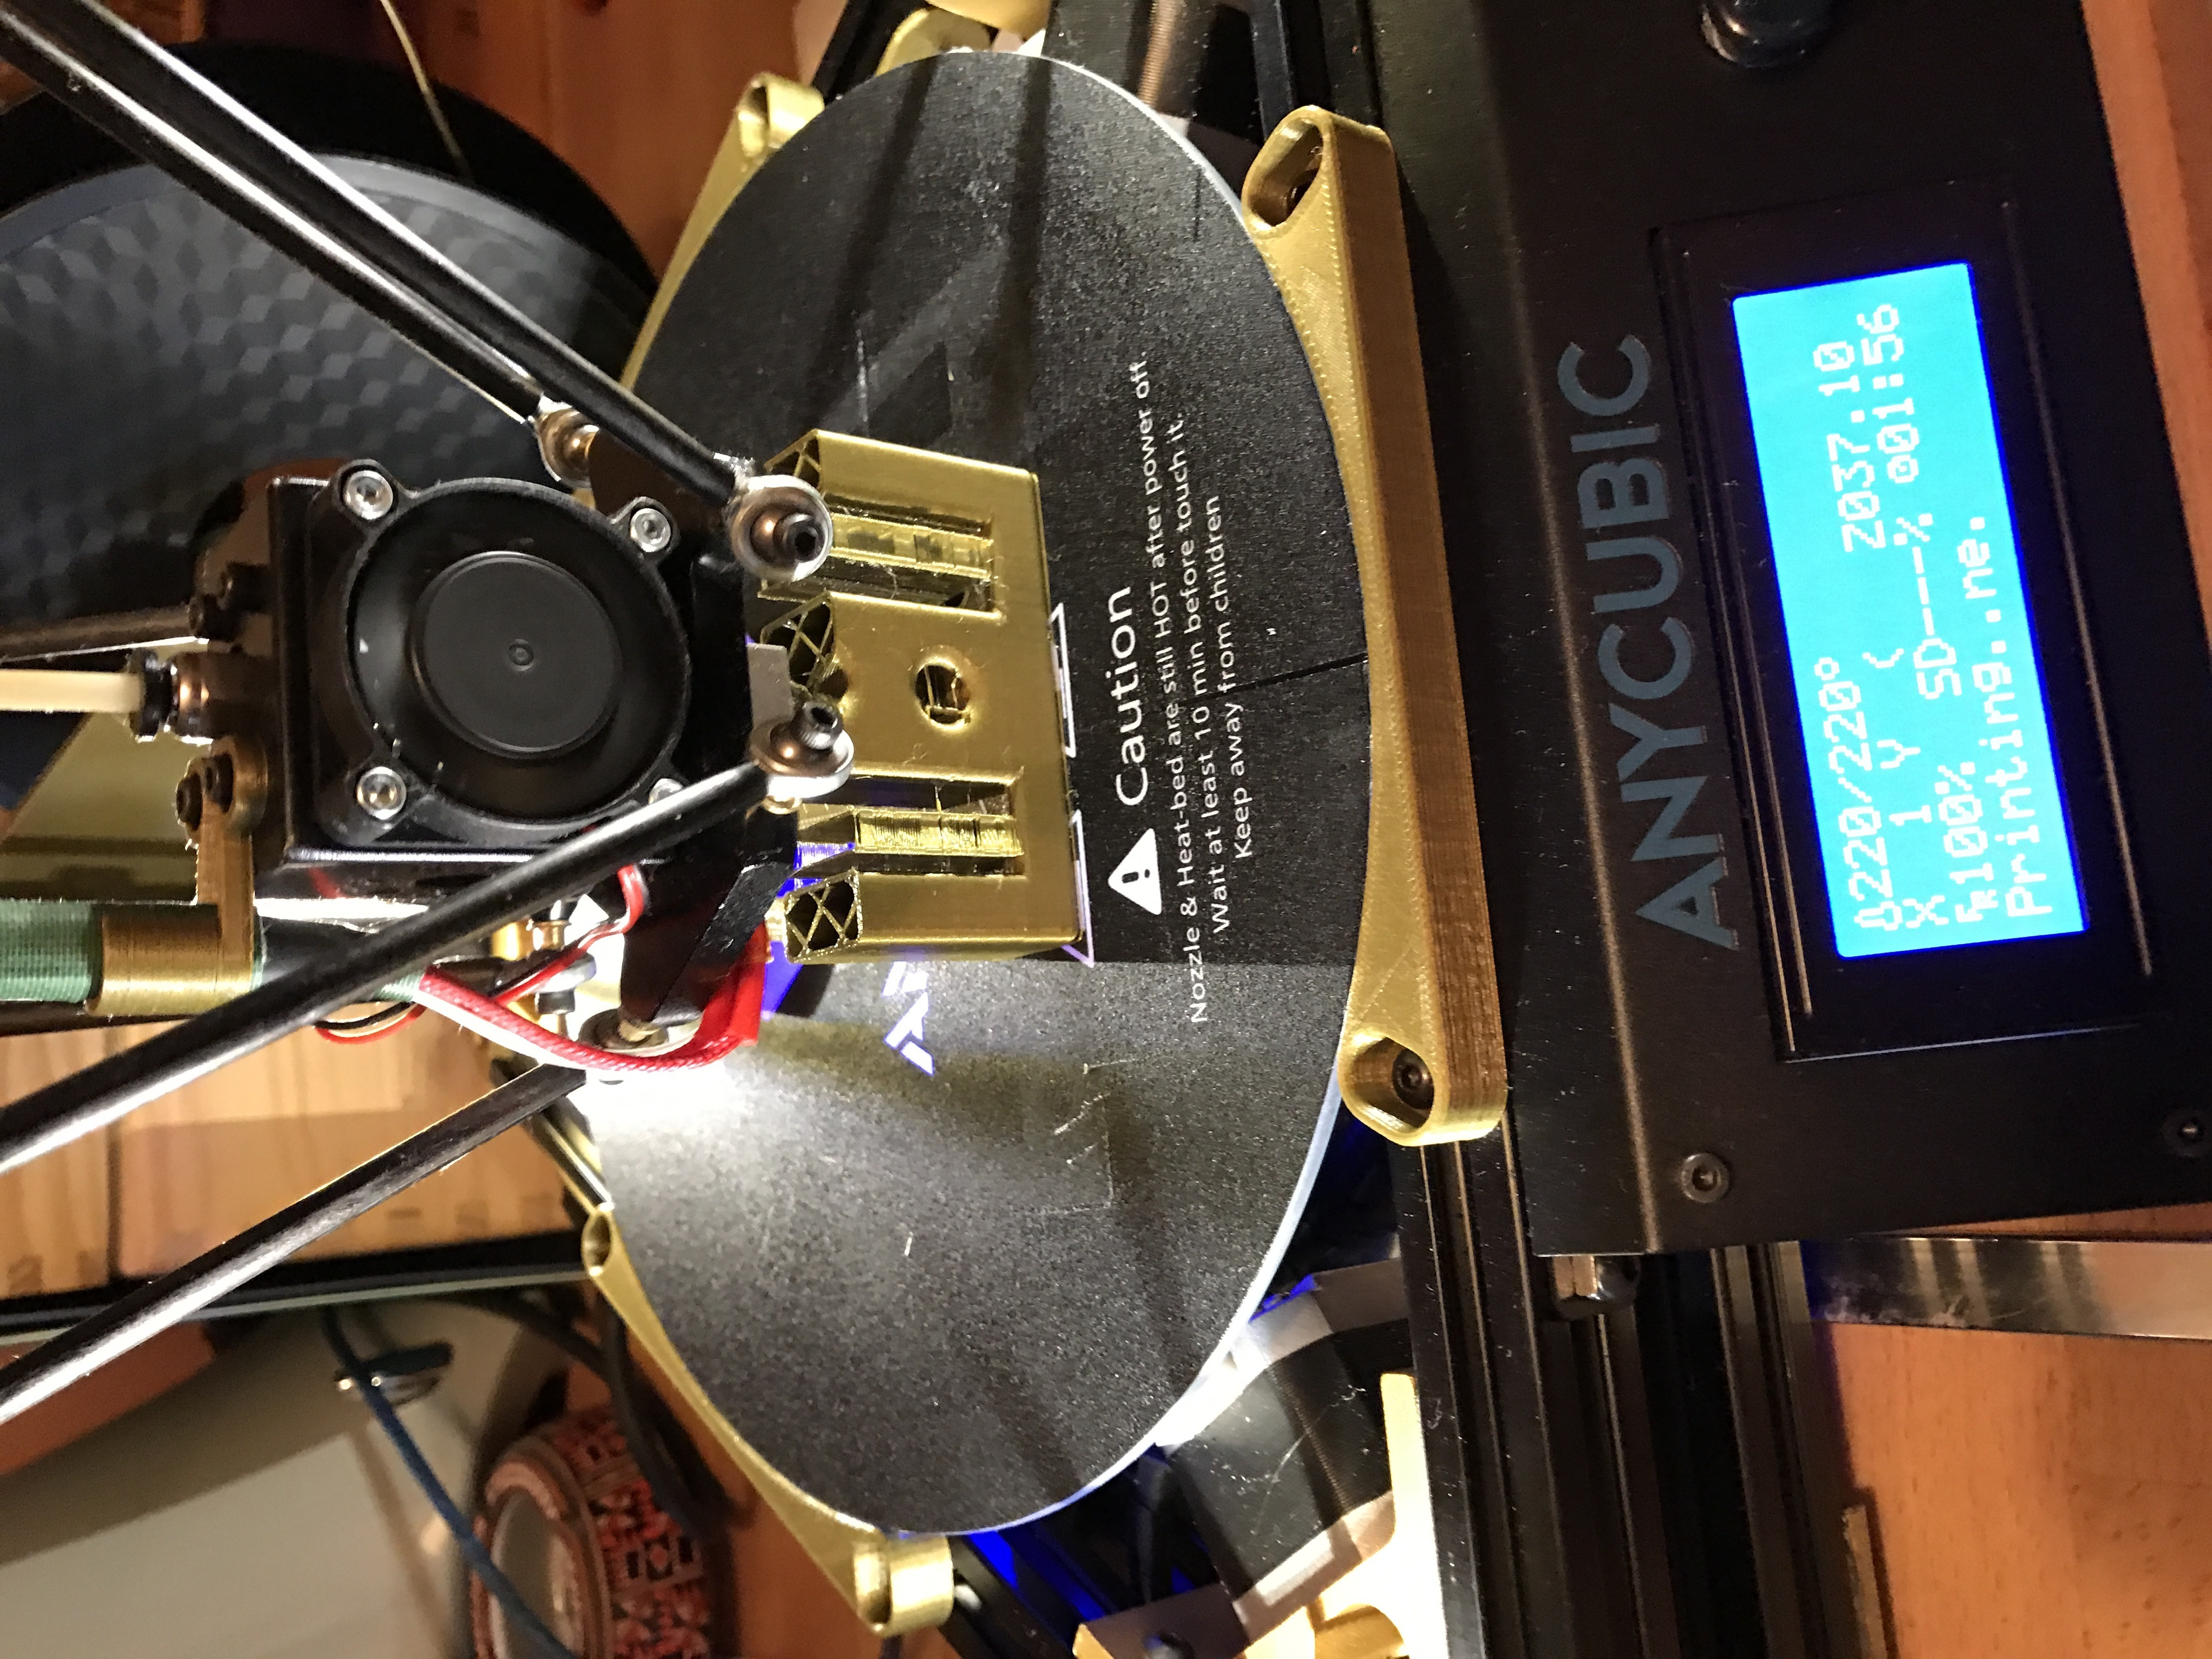 IMG_3209.JPG Download free STL file Anycubic Kossel Plus Top Internal Spool holder - Fixed • 3D print object, TsunamiSoul